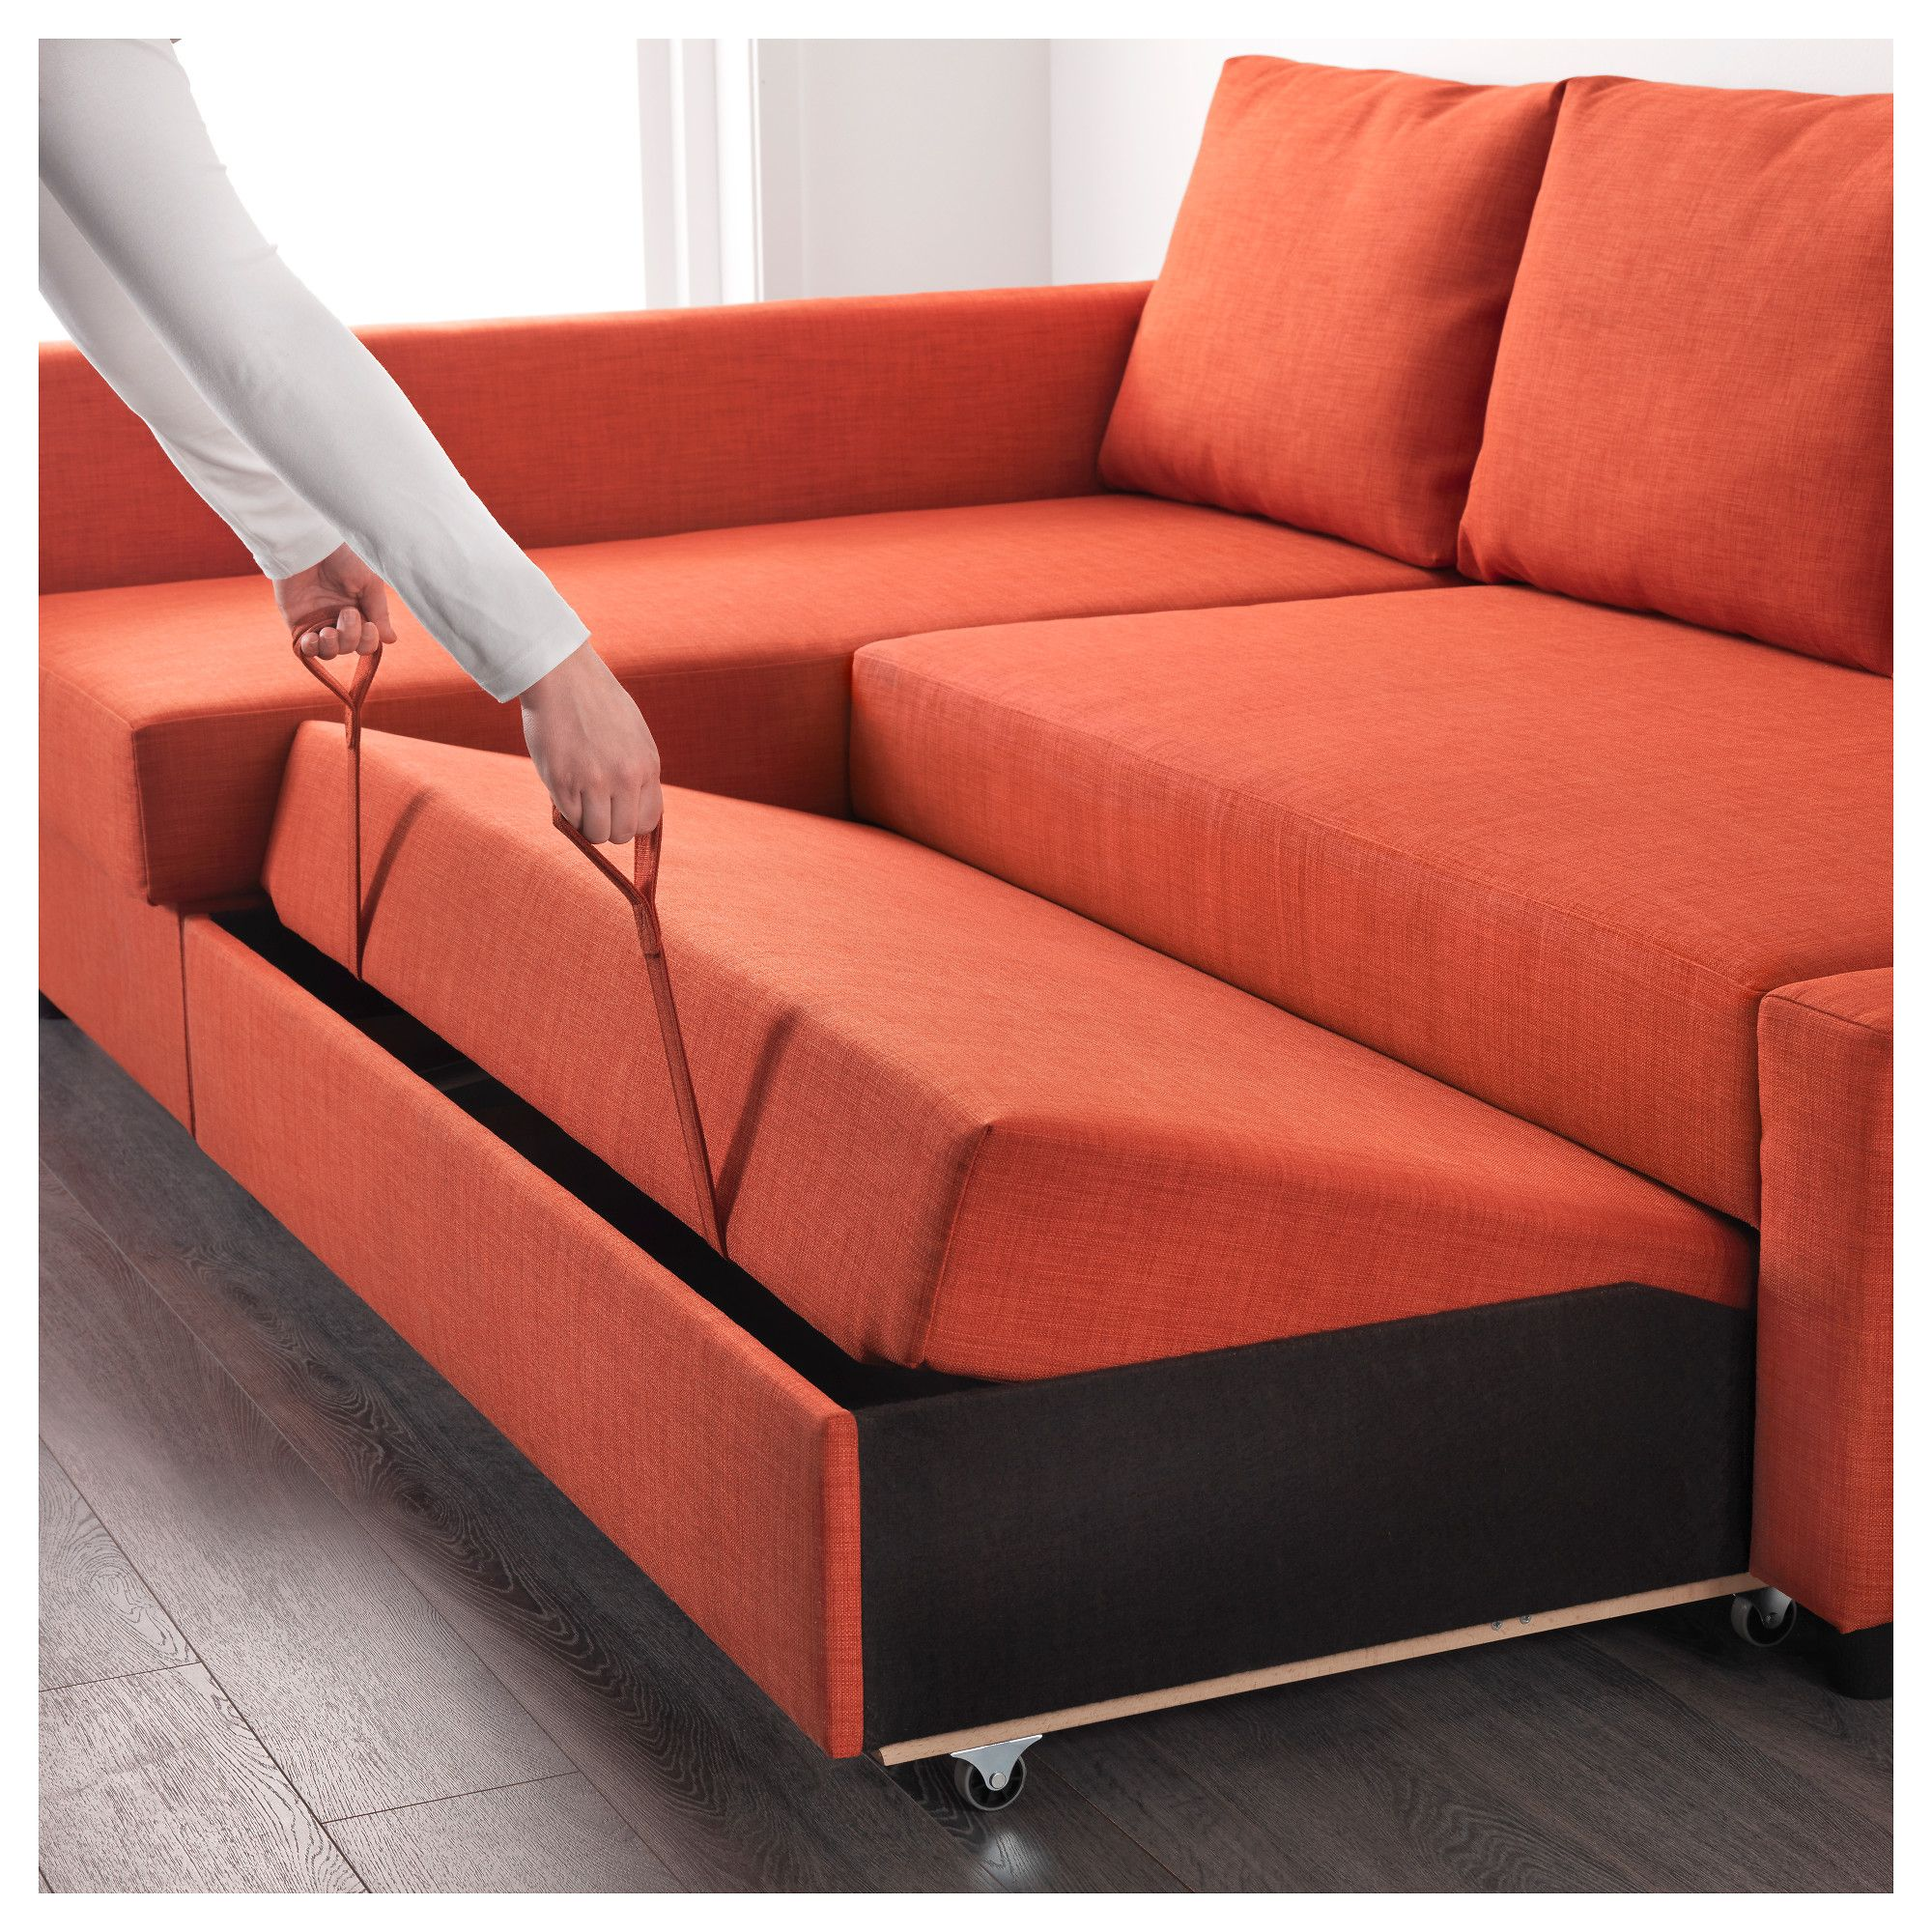 IKEA - FRIHETEN Corner sofa-bed with storage Skiftebo dark orange in ...